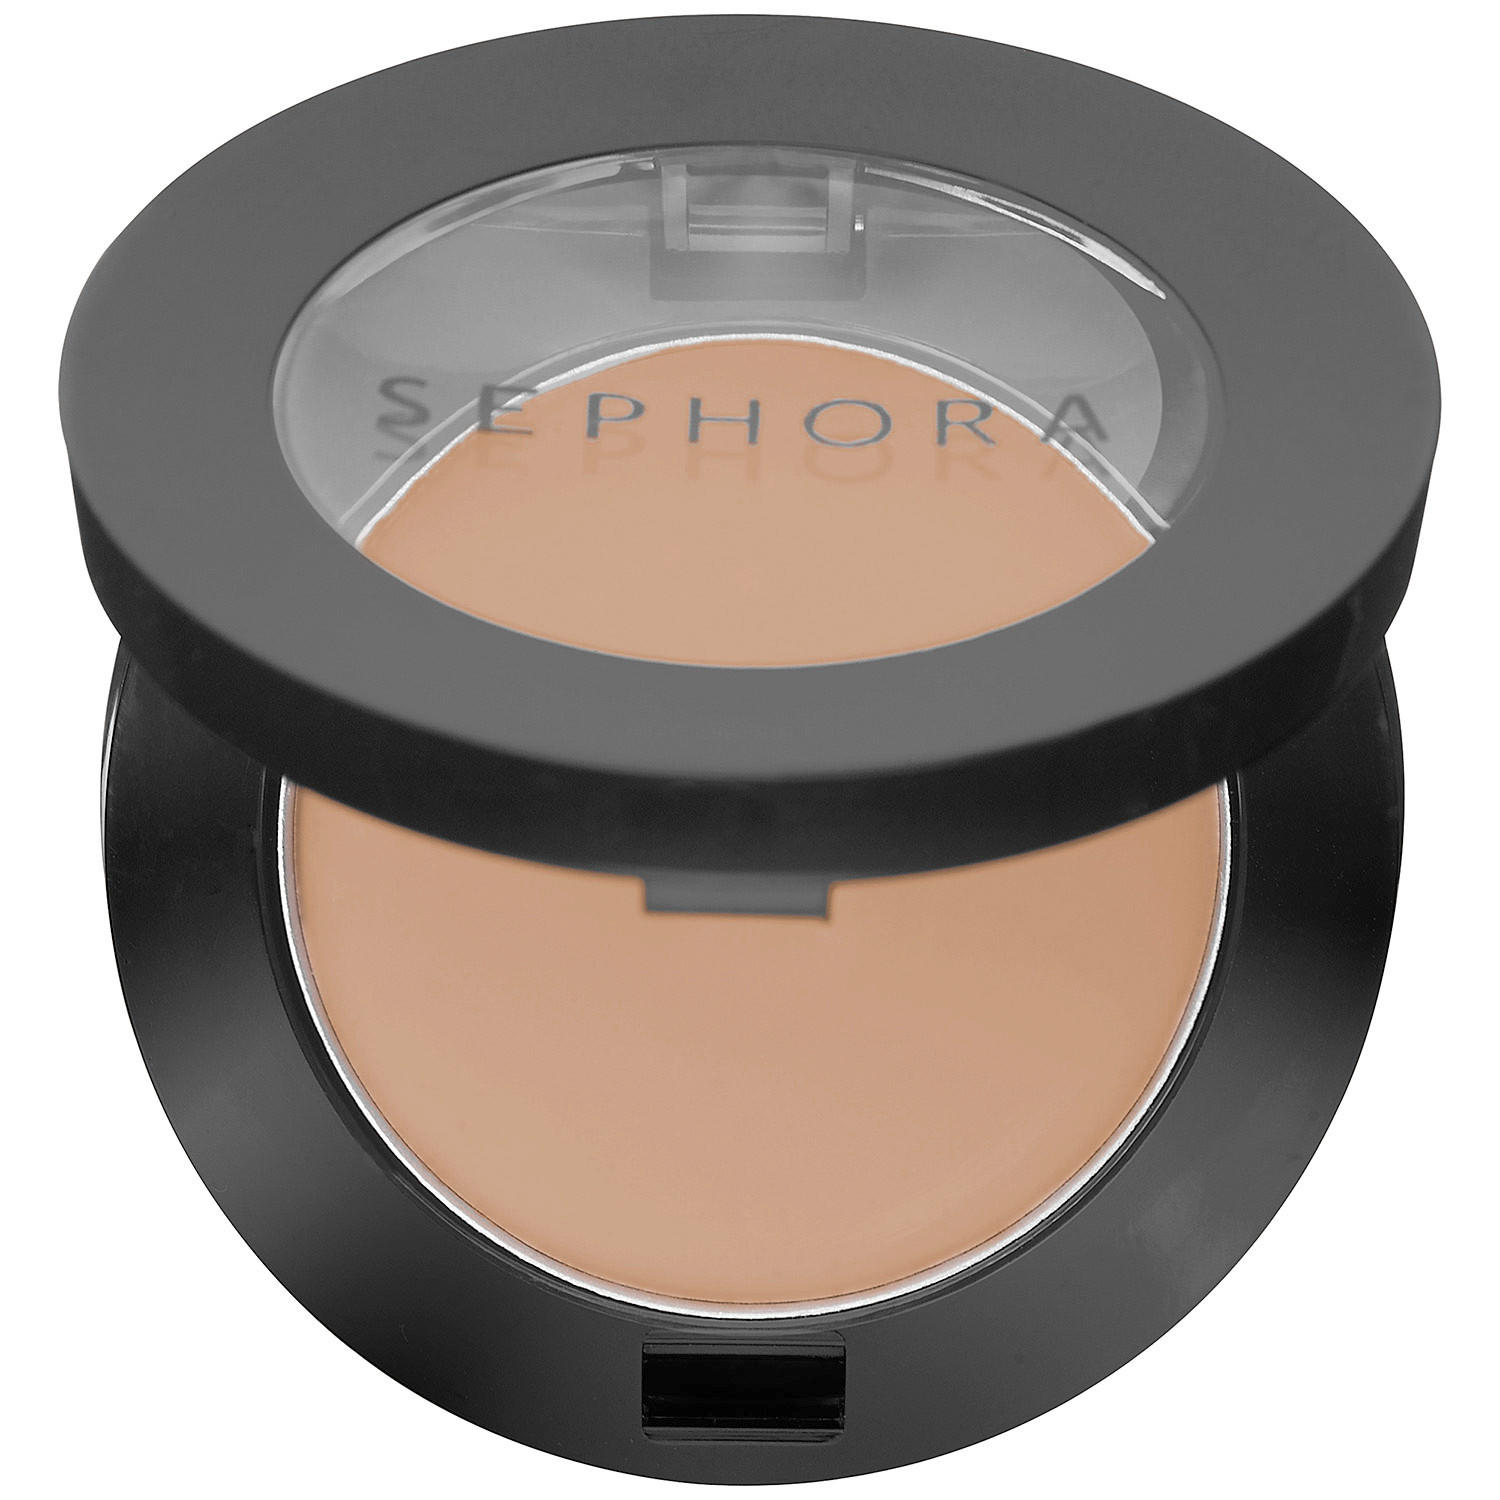 Sephora 8 HR Wear Perfect Cover Concealer Light 22